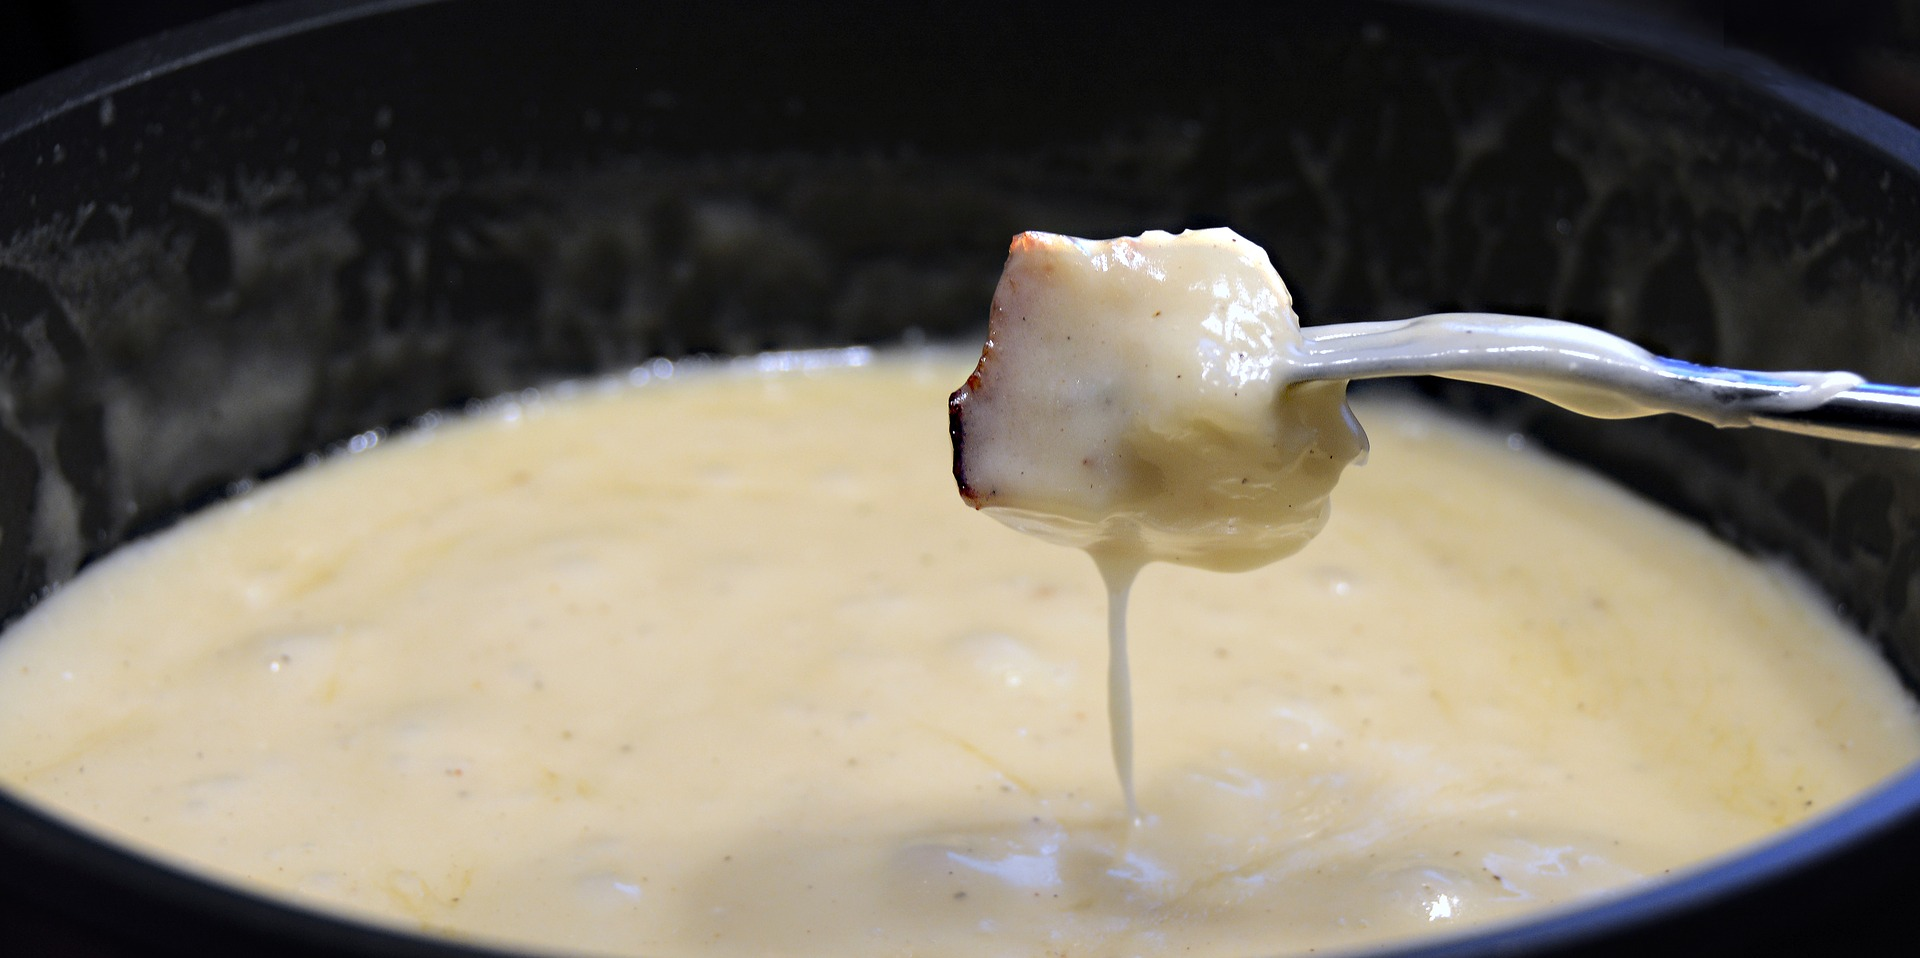 Fromage fondue